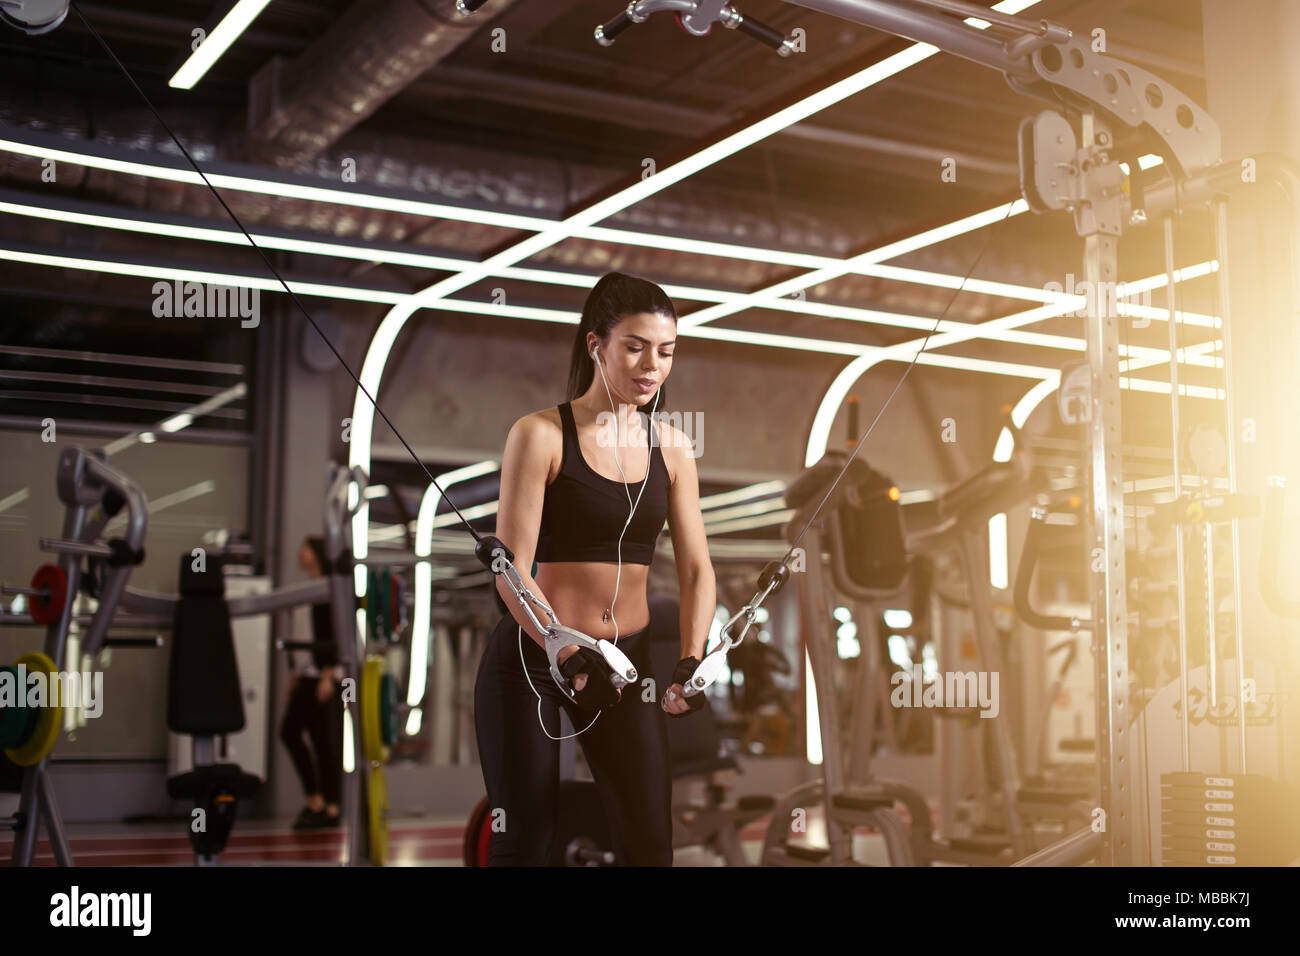 fit woman execute exercise with exercise-machine Cable Crossover in gym - Stock Image